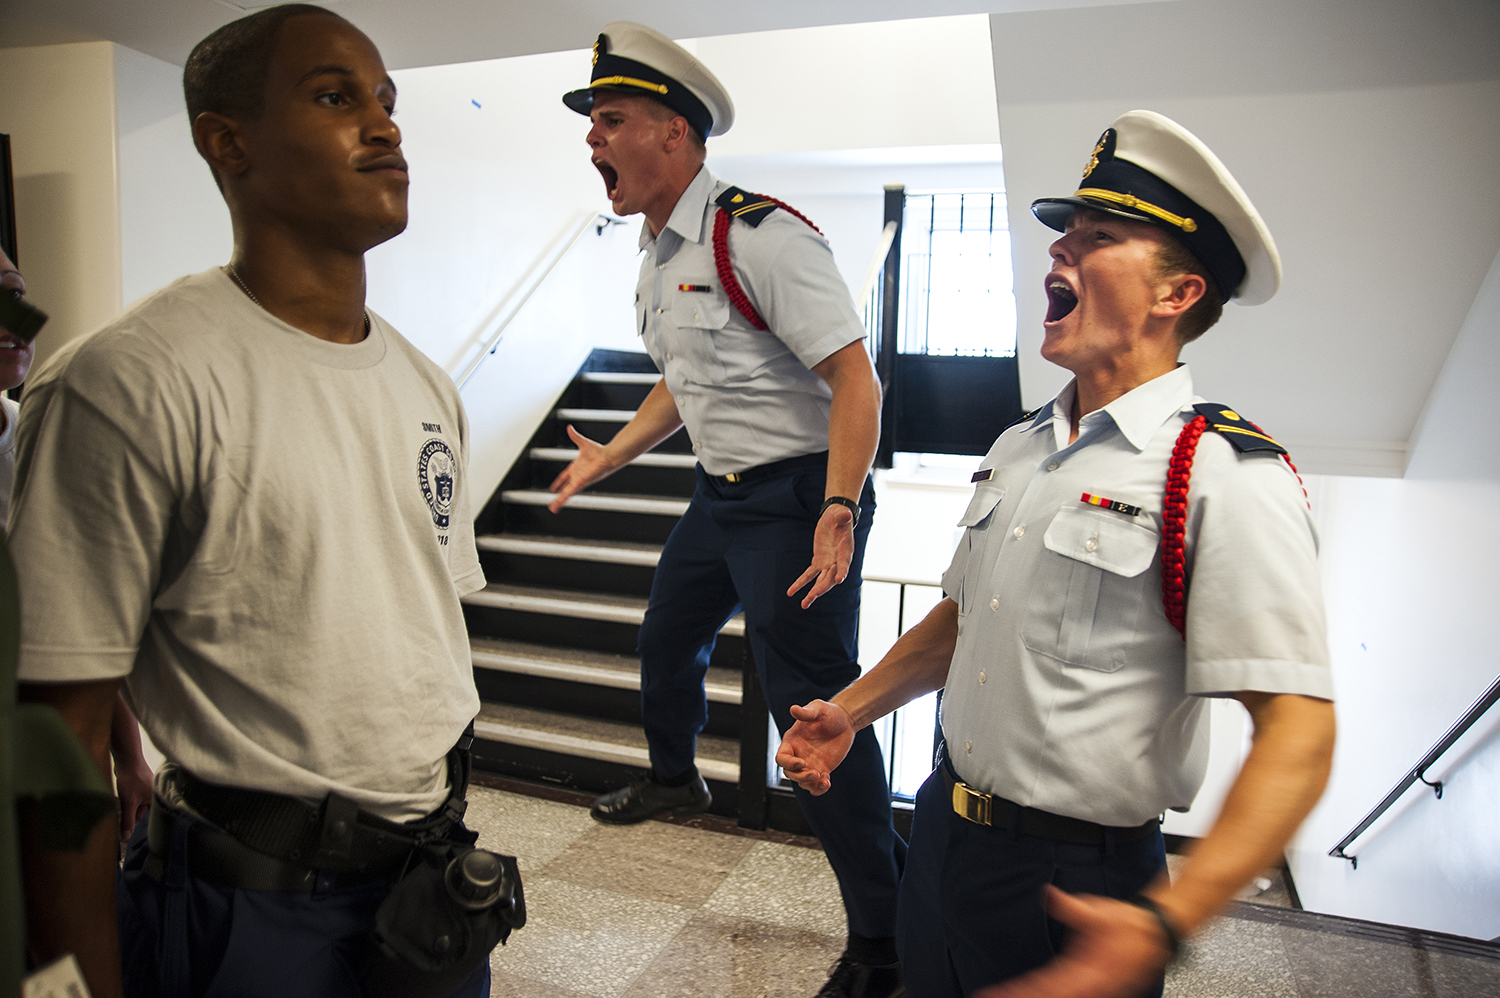 NEW LONDON- 06302014-- Swab Che Smith (left) of Horn Lake, MS receives an immediate and sharp rebuke from Delta Company Cadres, Lobmeyer, center, and Hirst, right, during R-Day during the United States Coast Guard Academy's Swab Summer in New London on Monday, June 30, 2014.(DANIEL OWEN | The Hartford Courant)